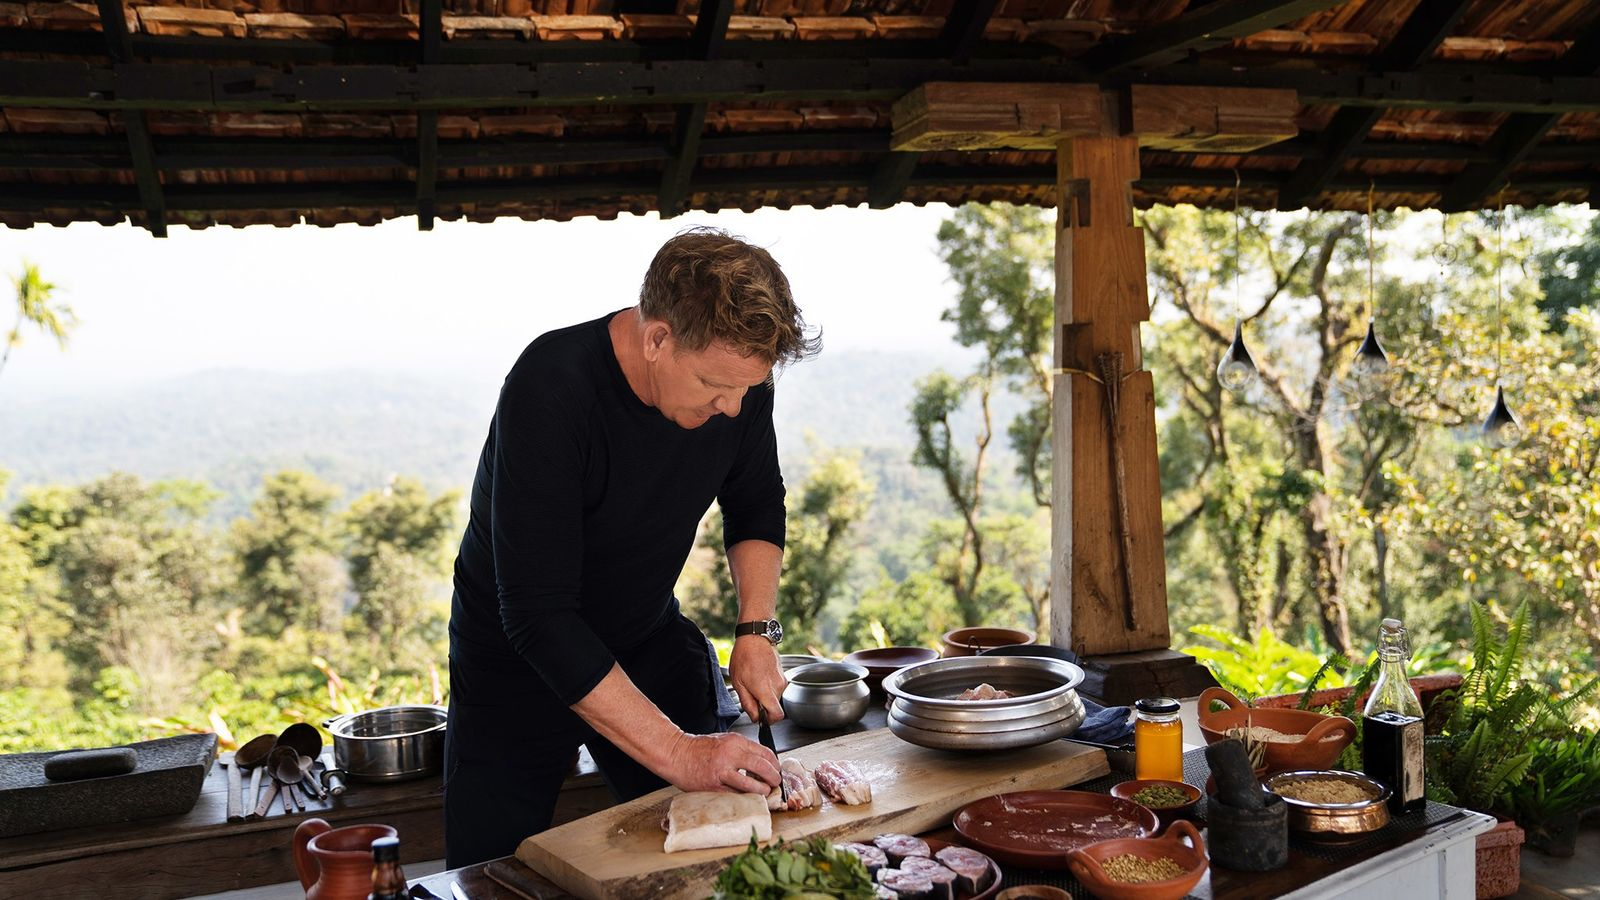 While filming Season 2 of National Geographic Channel's Gordon Ramsay: Uncharted, the star chef preps a ...